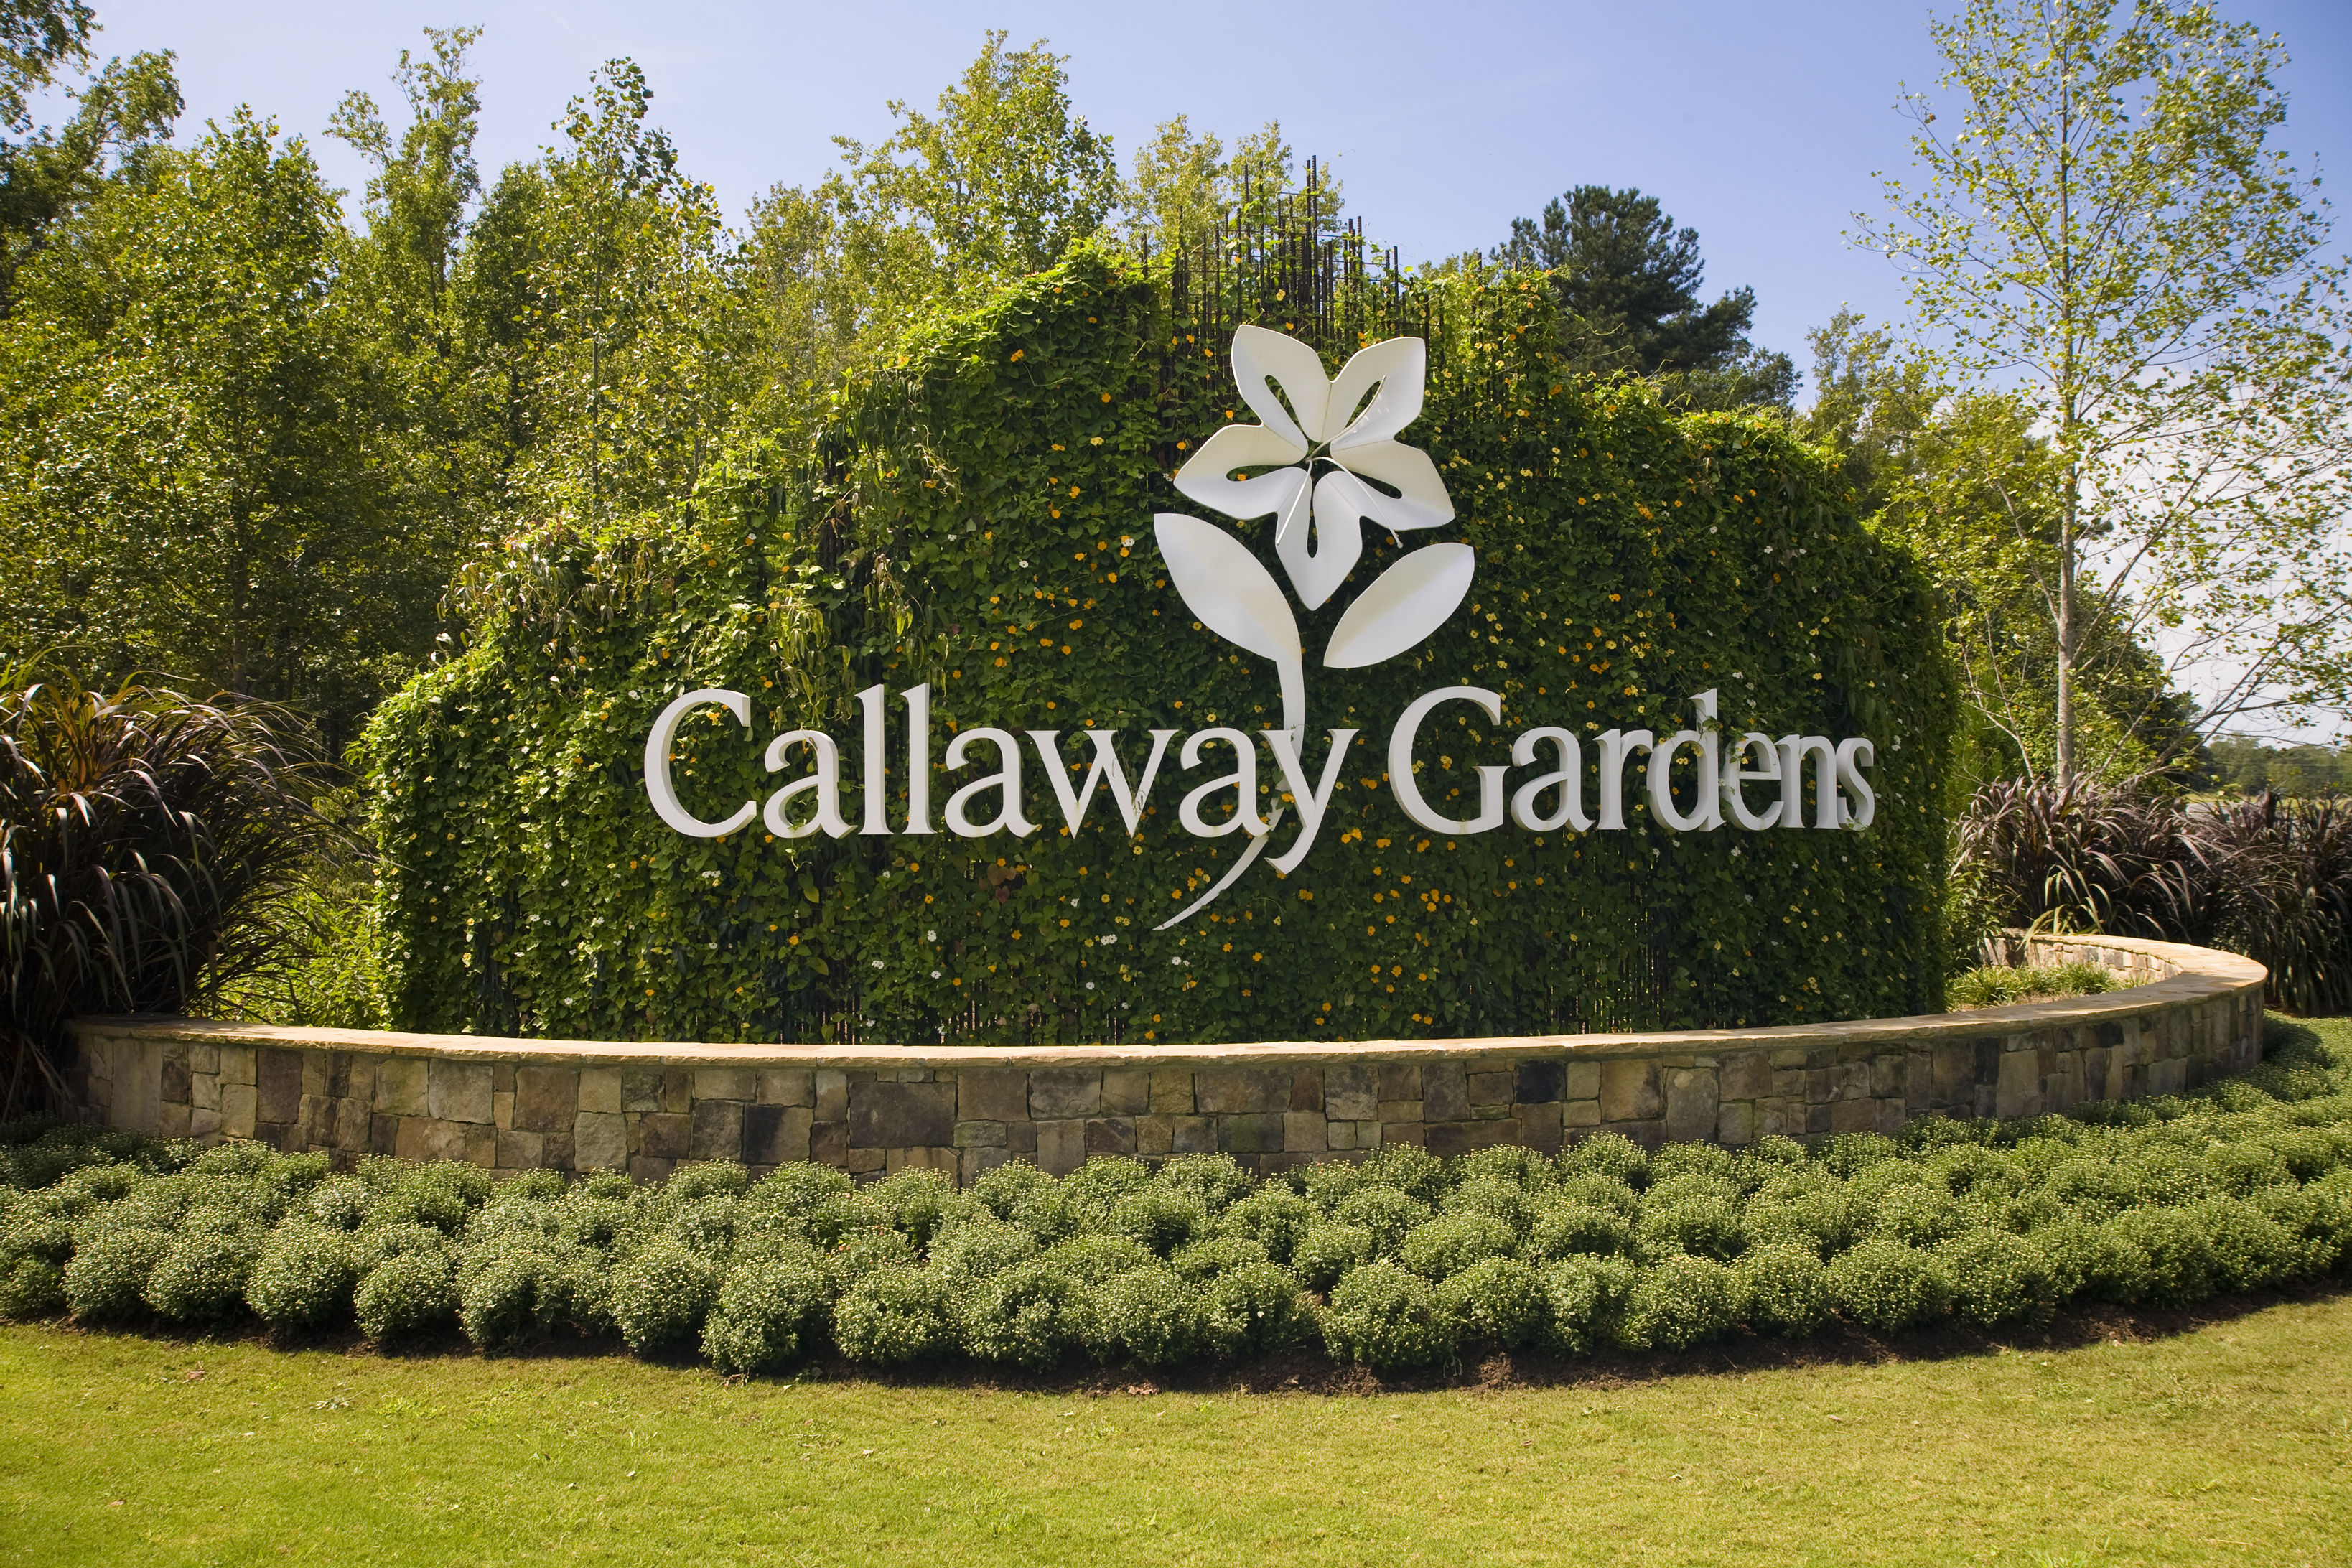 You Should Plan a Trip to Callaway Gardens This Summer